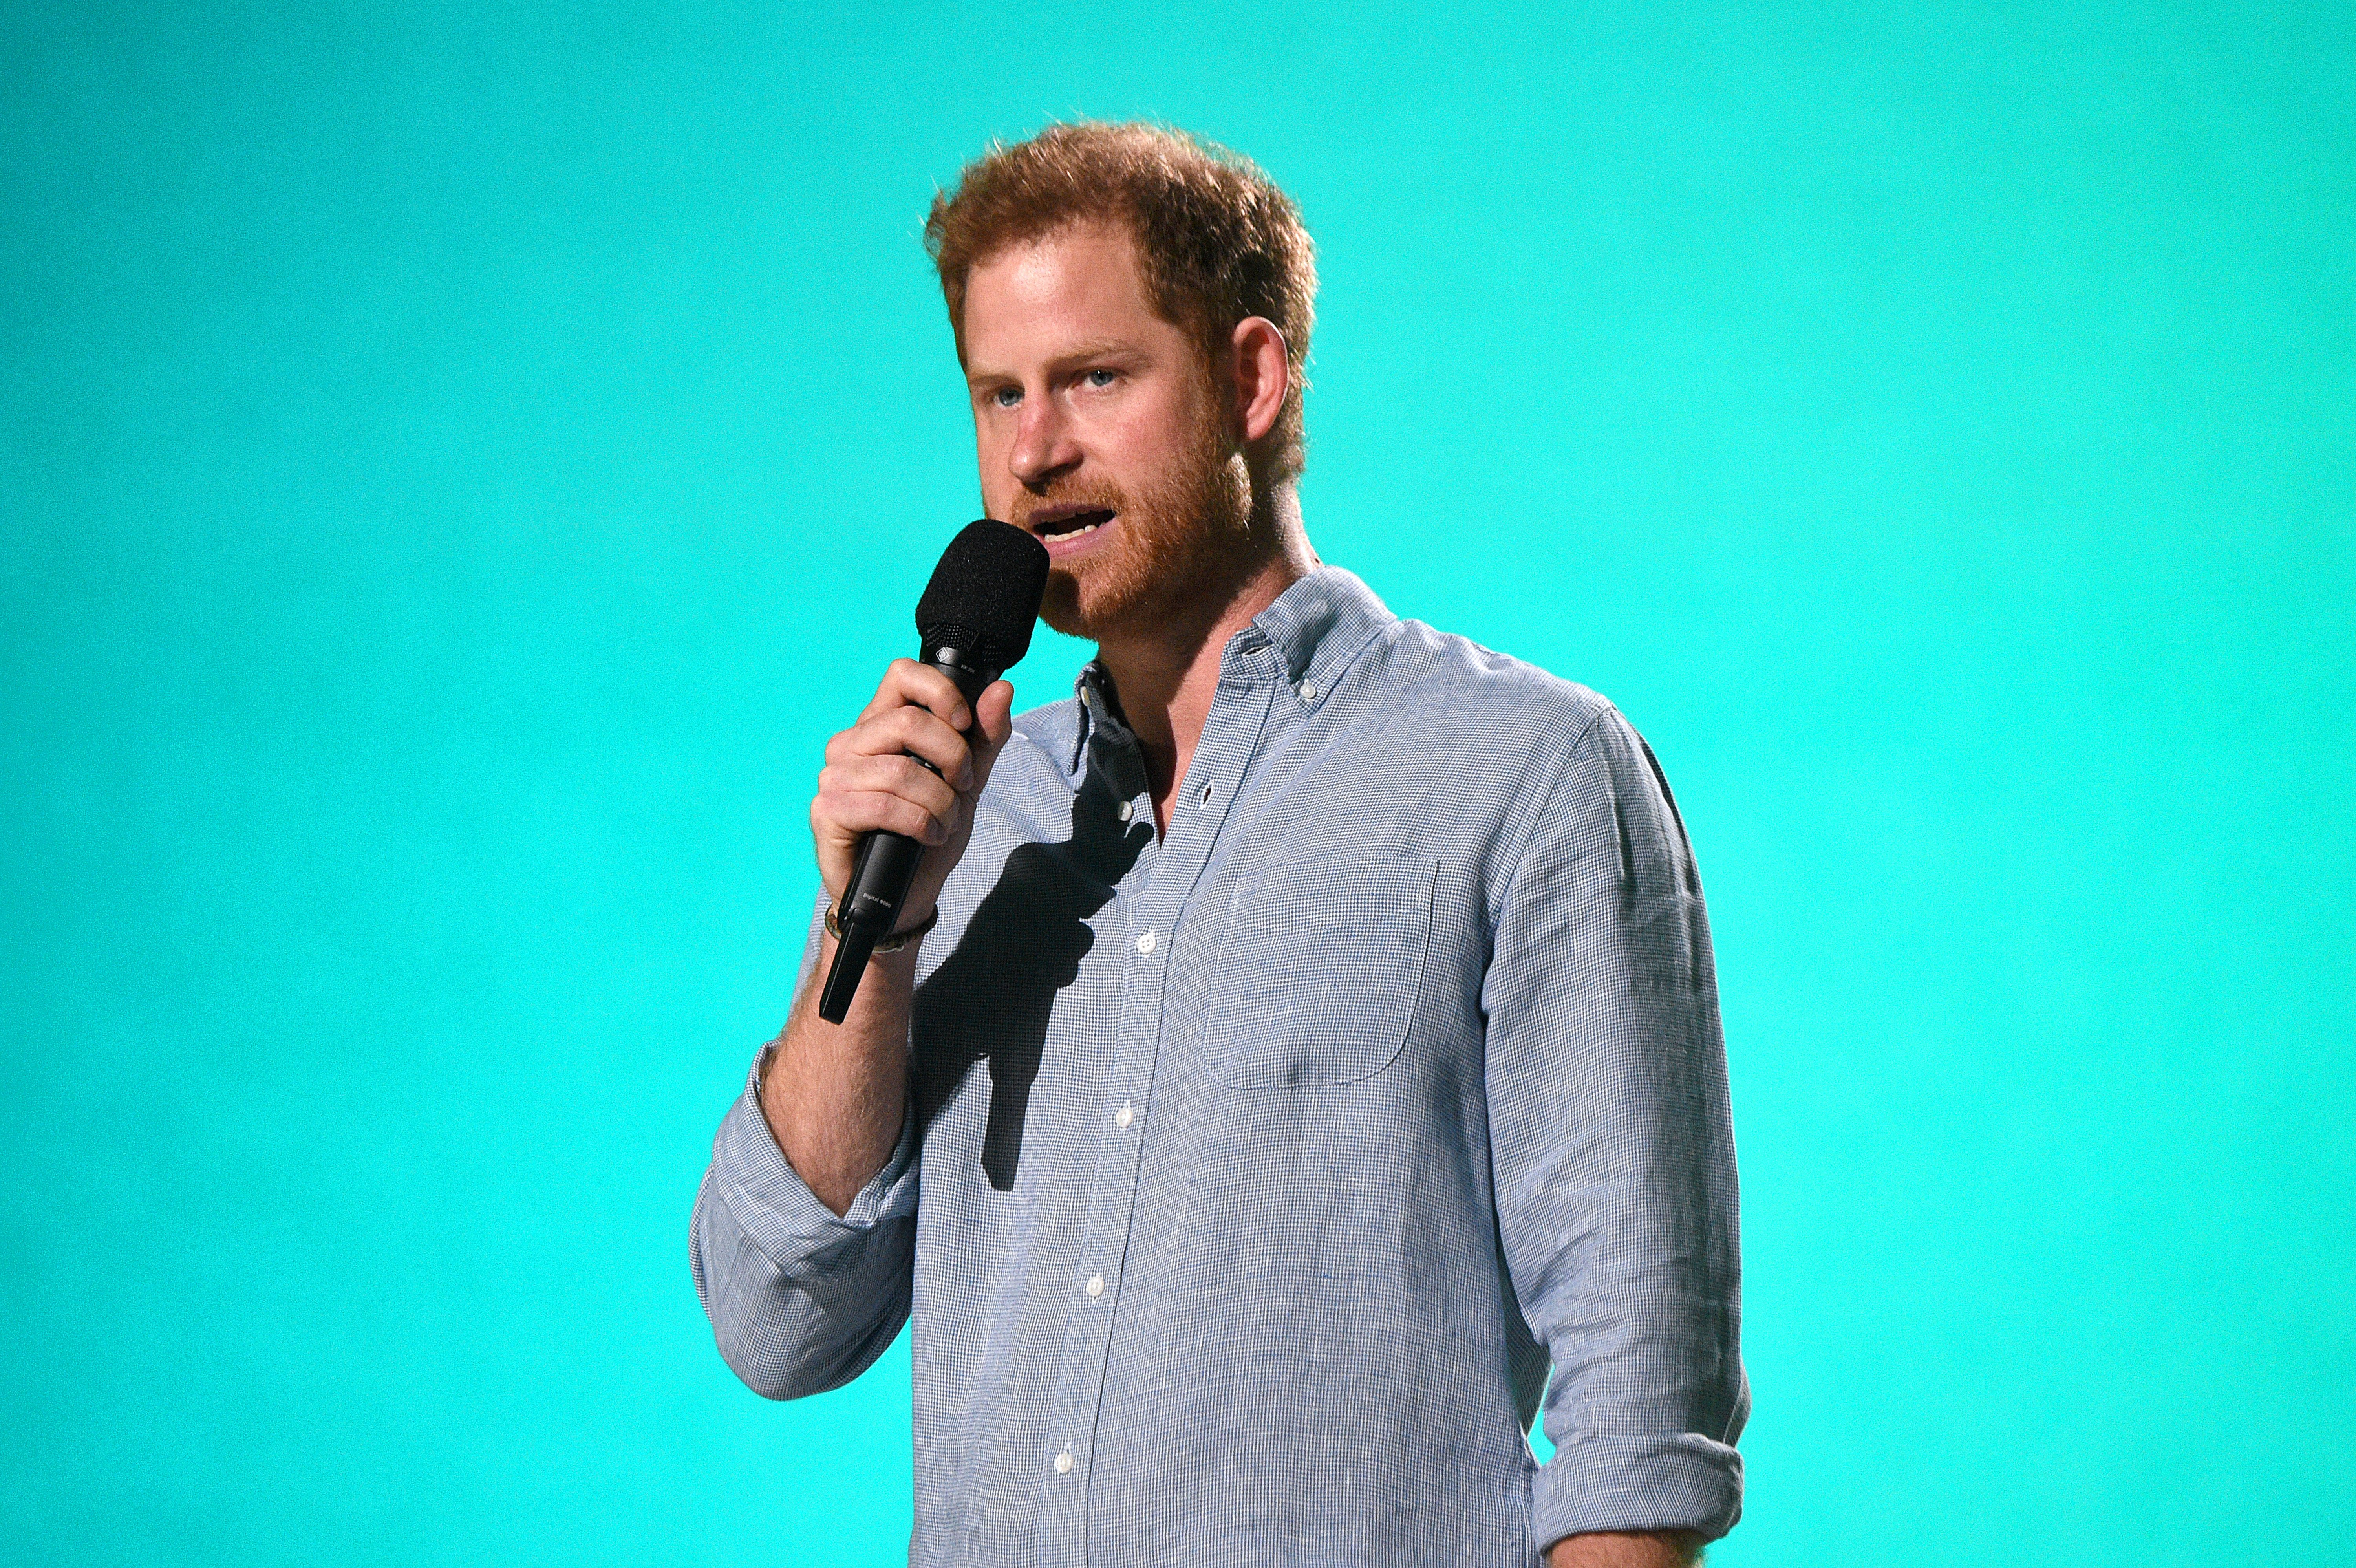 Prince Harry, The Duke of Sussex speaks onstage at SoFi Stadium in Inglewood, California, released on May 2   Source: Getty Images